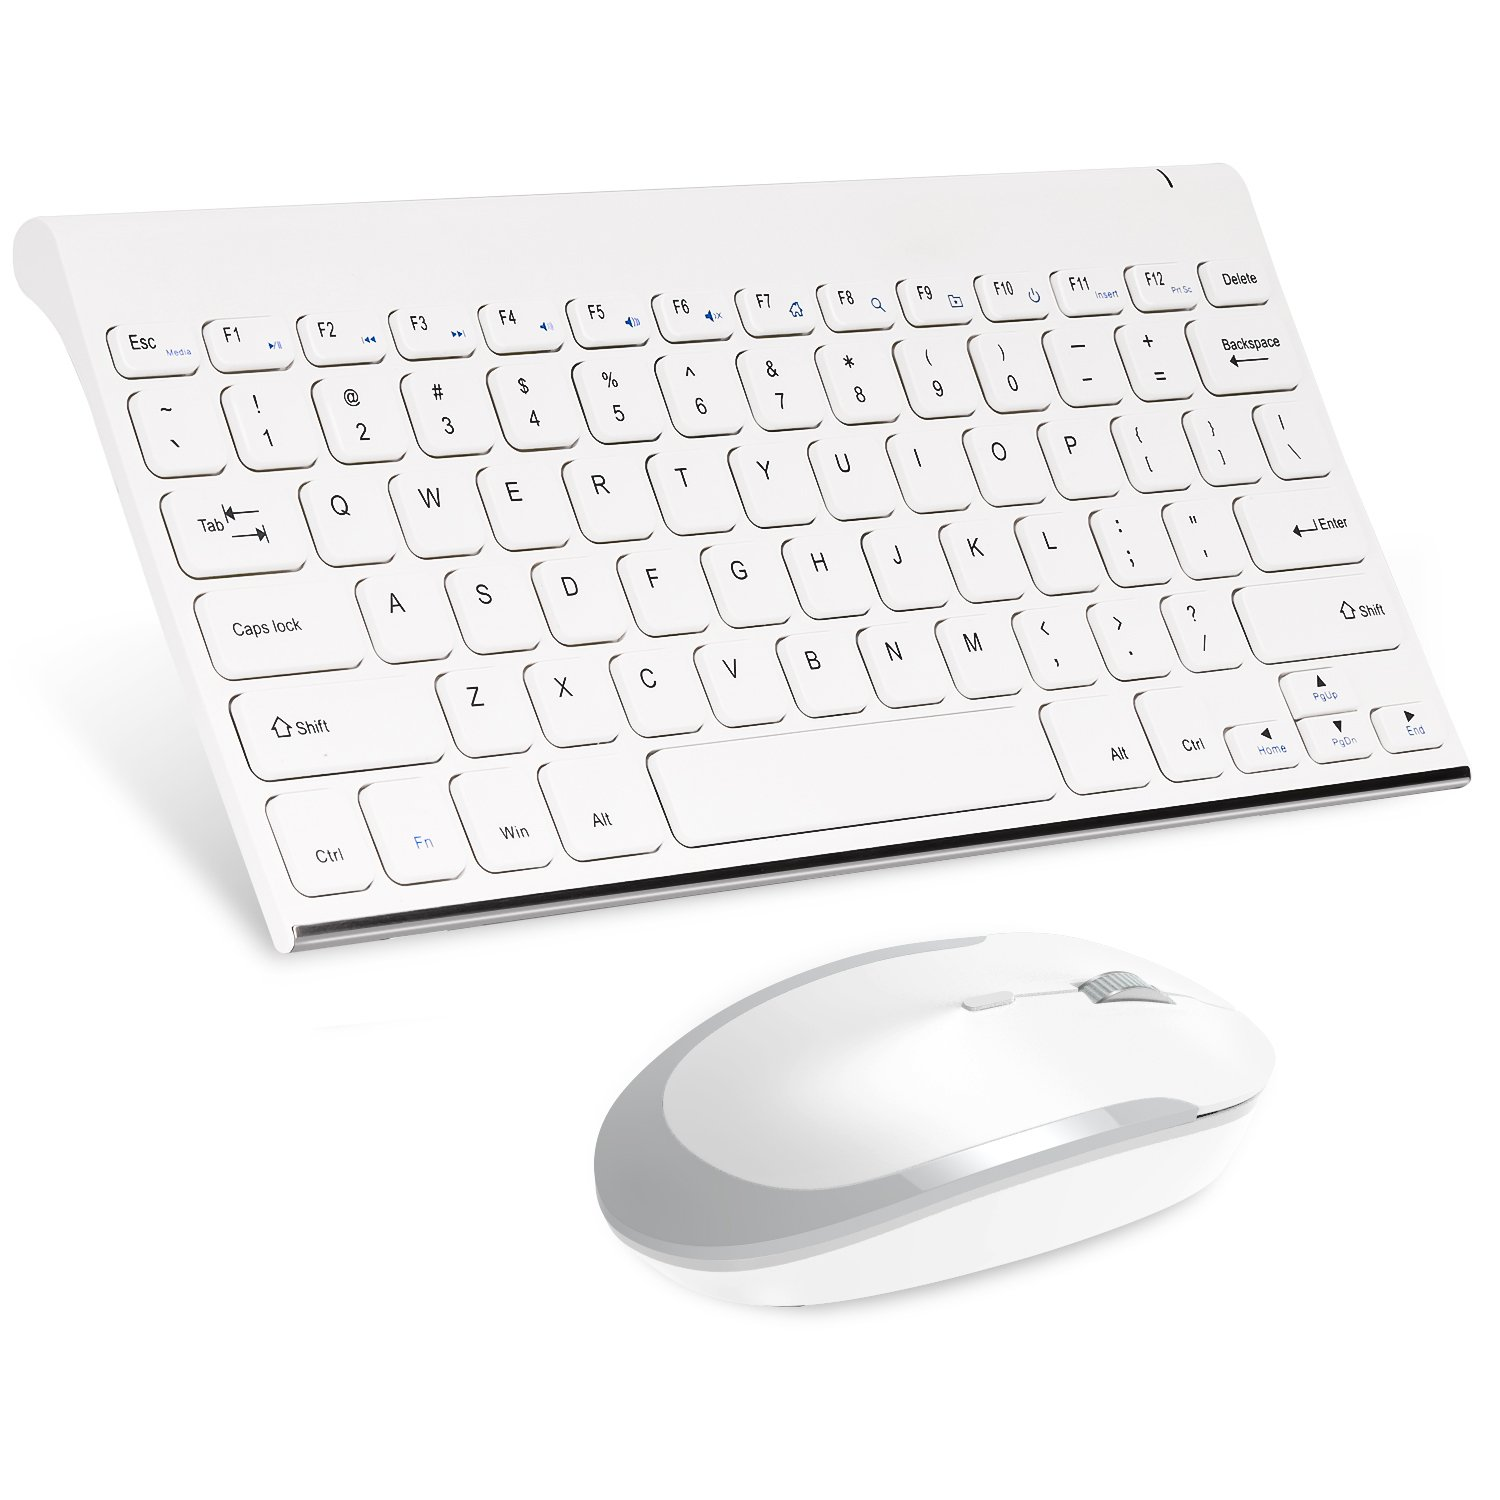 3f4c71cd1ec Amazon.com: MoKo Wireless Keyboard and Mouse, 2.4G Mini Small Rechargeable Keyboard  Mouse Combo for Computer, Laptop, Desktop, PC, Compatible with Windows ...